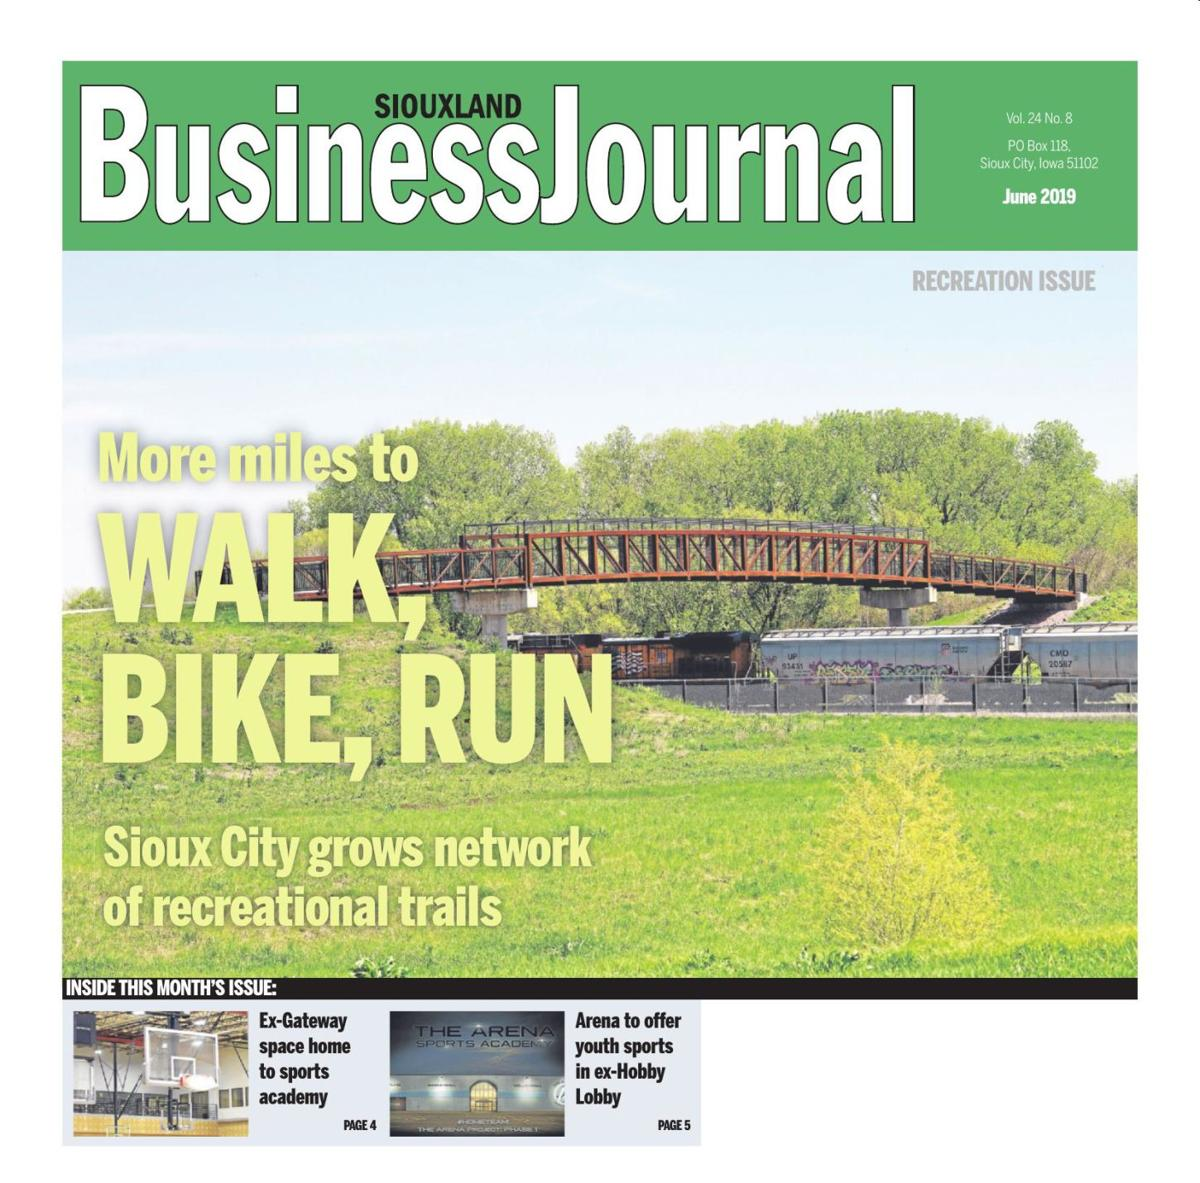 Siouxland Business Journal - June 2019